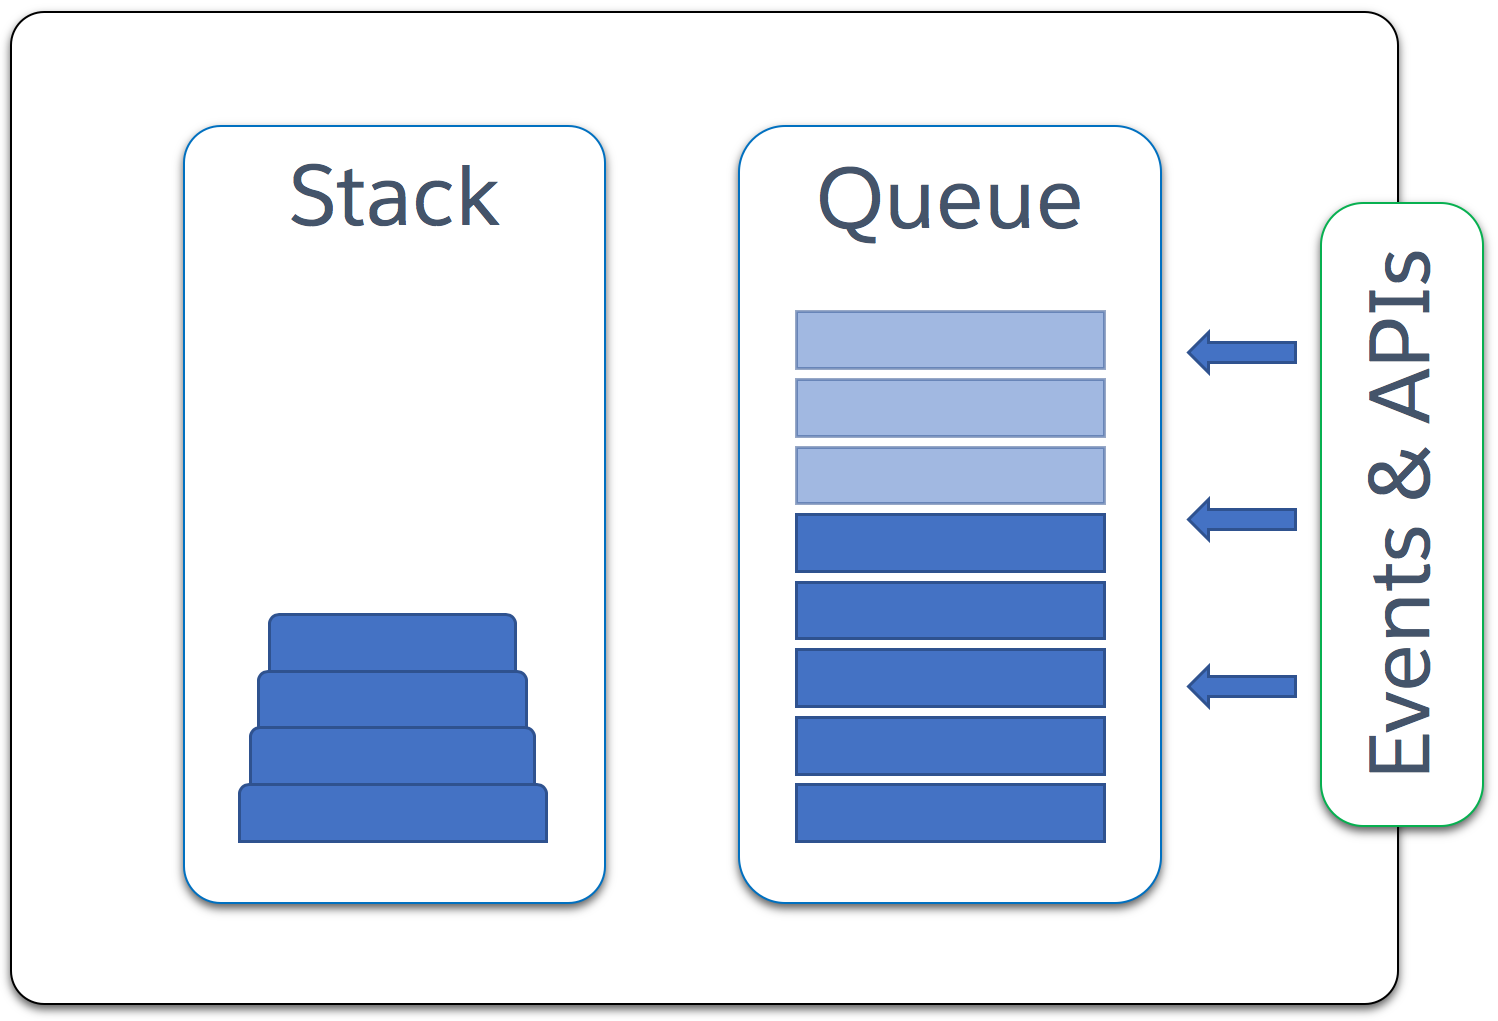 JavaScript engine with the stack, queue, events, and APIs